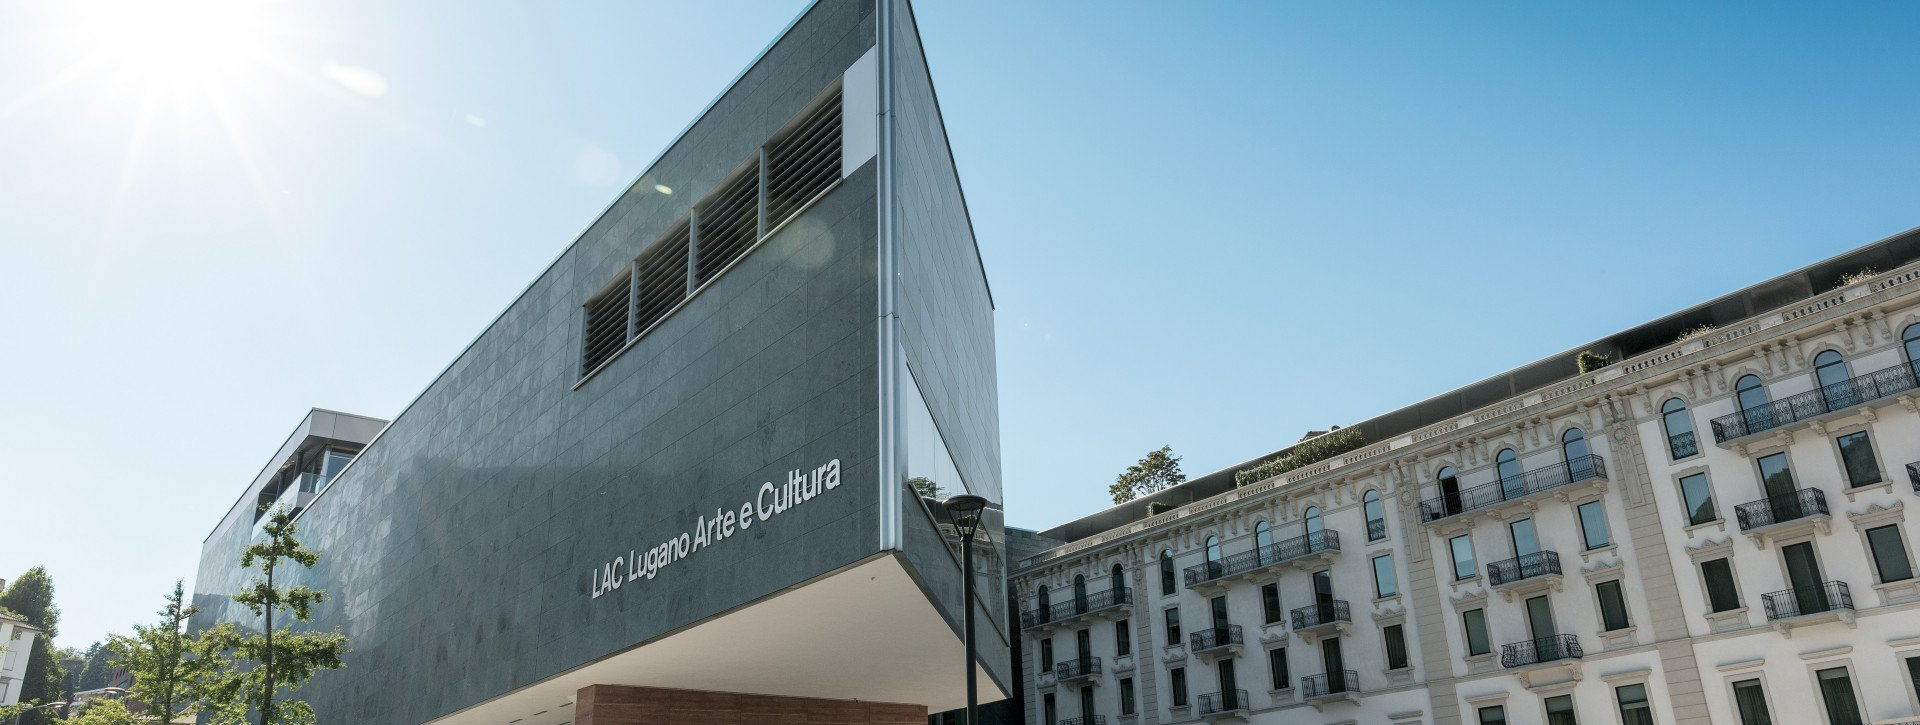 The building of the Lugano Arte e Cultura museum